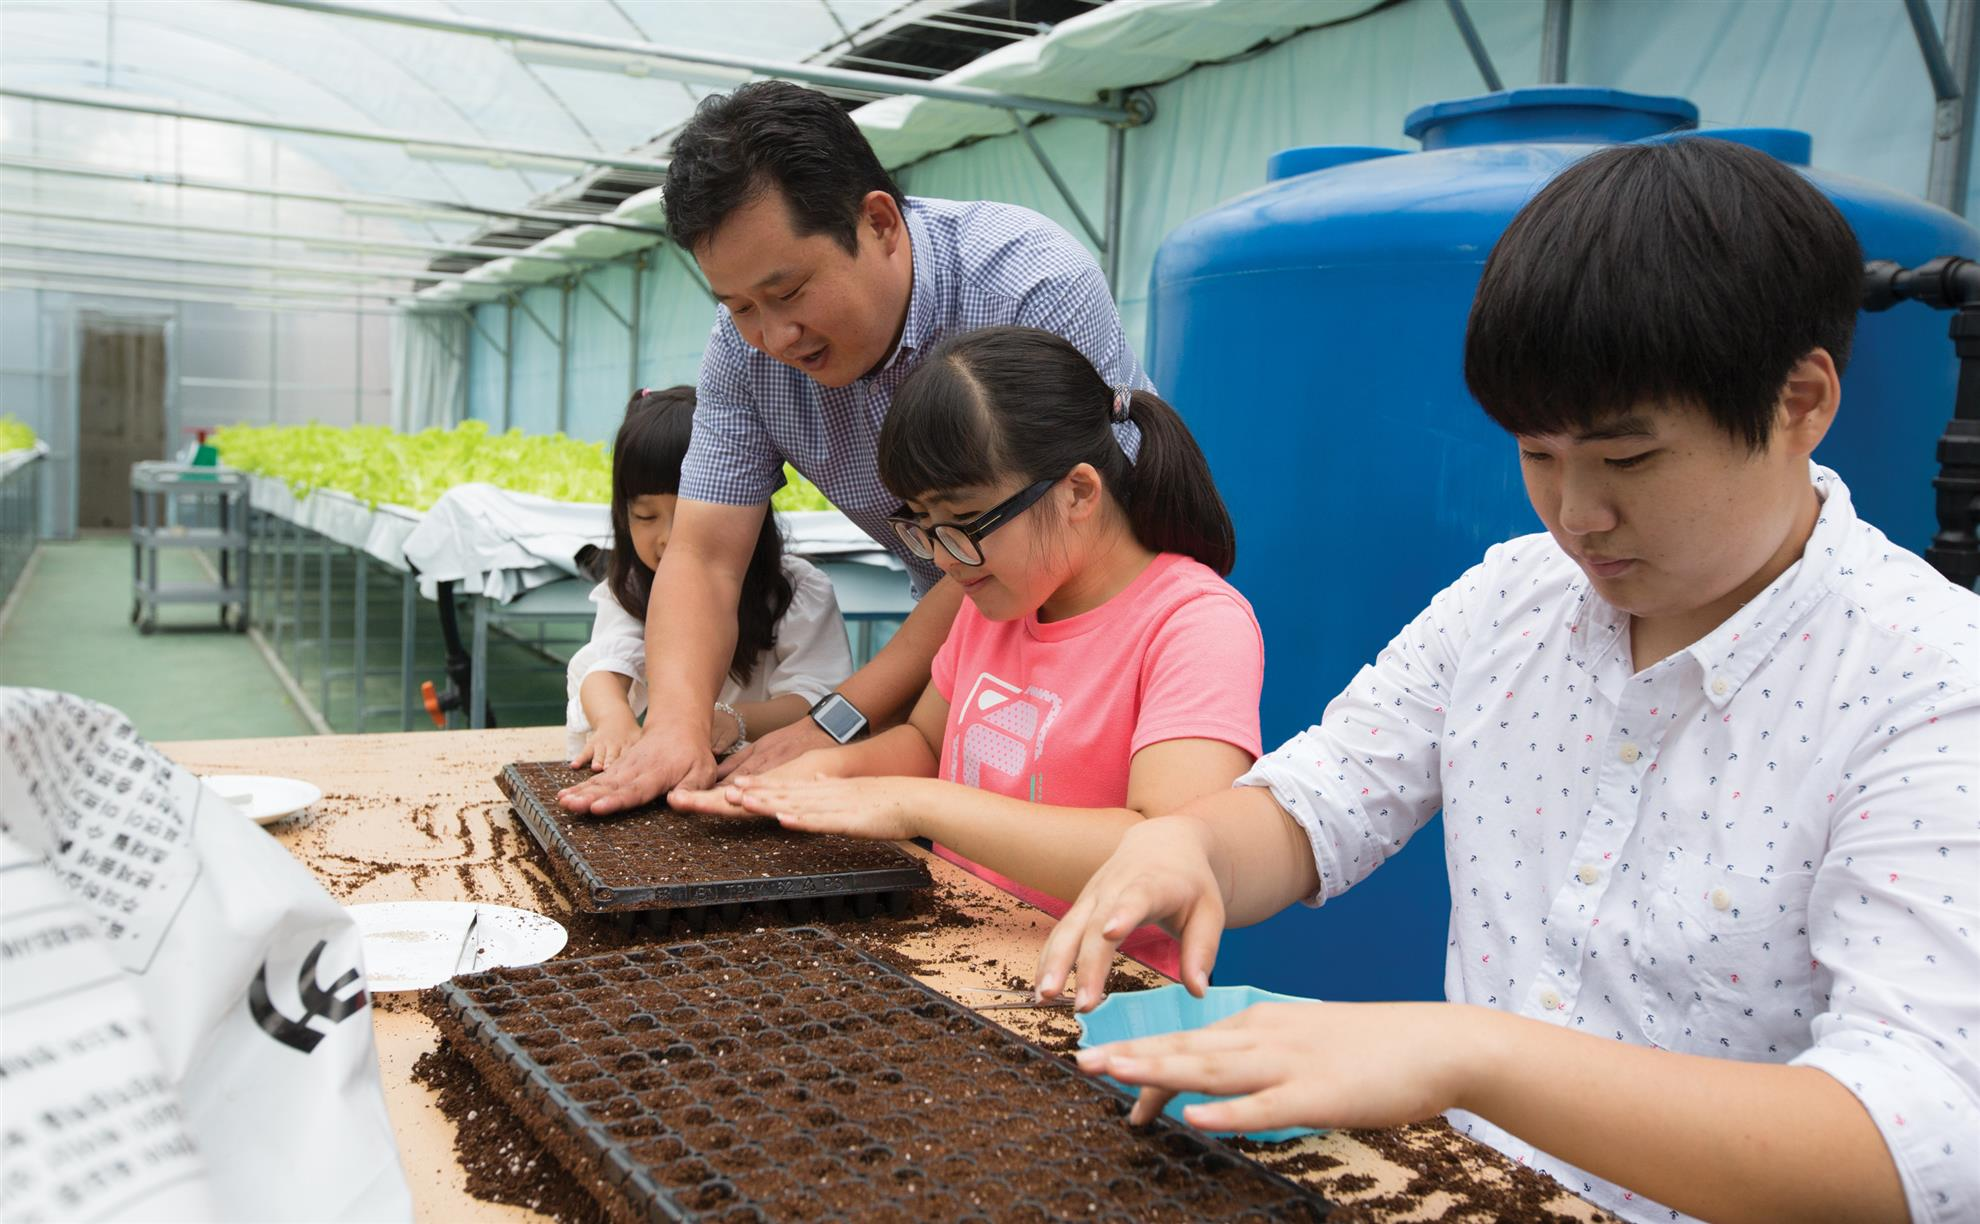 Rotarian mentor Oh Je Kwon shows students Seol Rim Kim and Sun Tak Kwon how to plant seeds in the dirt in the greenhouse © Rotary International